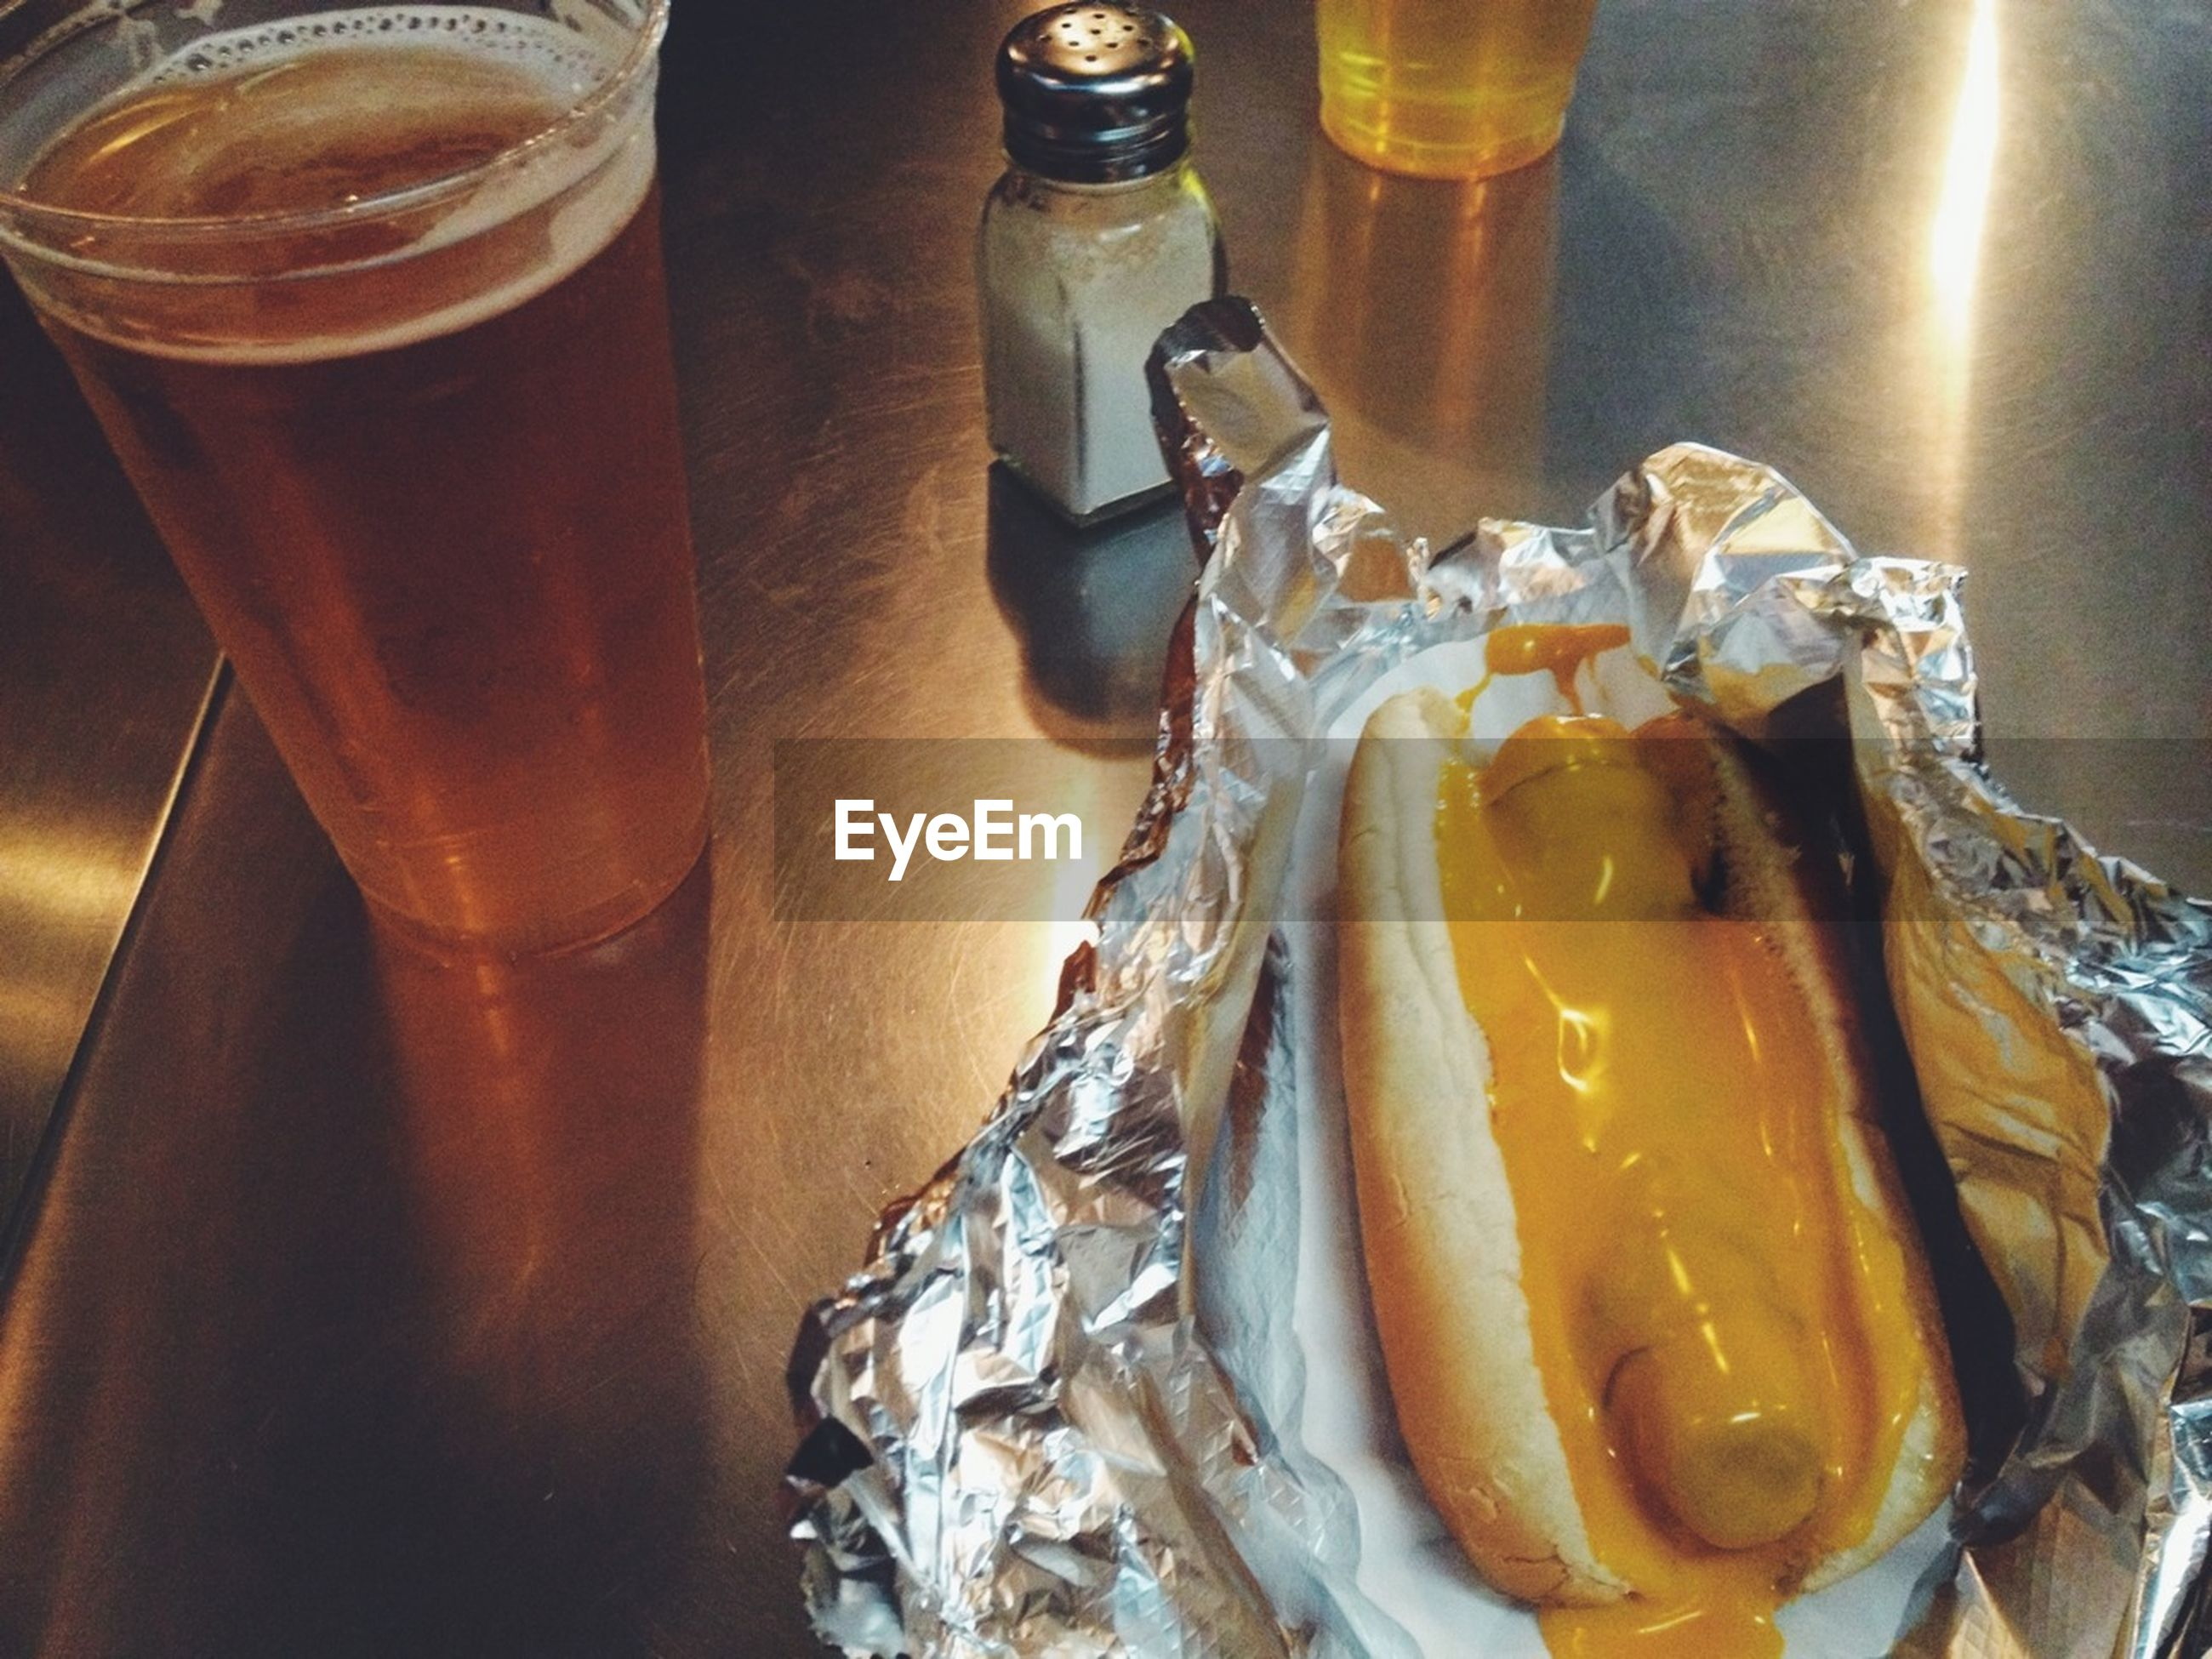 Close-up of hot dog and beer glass on table